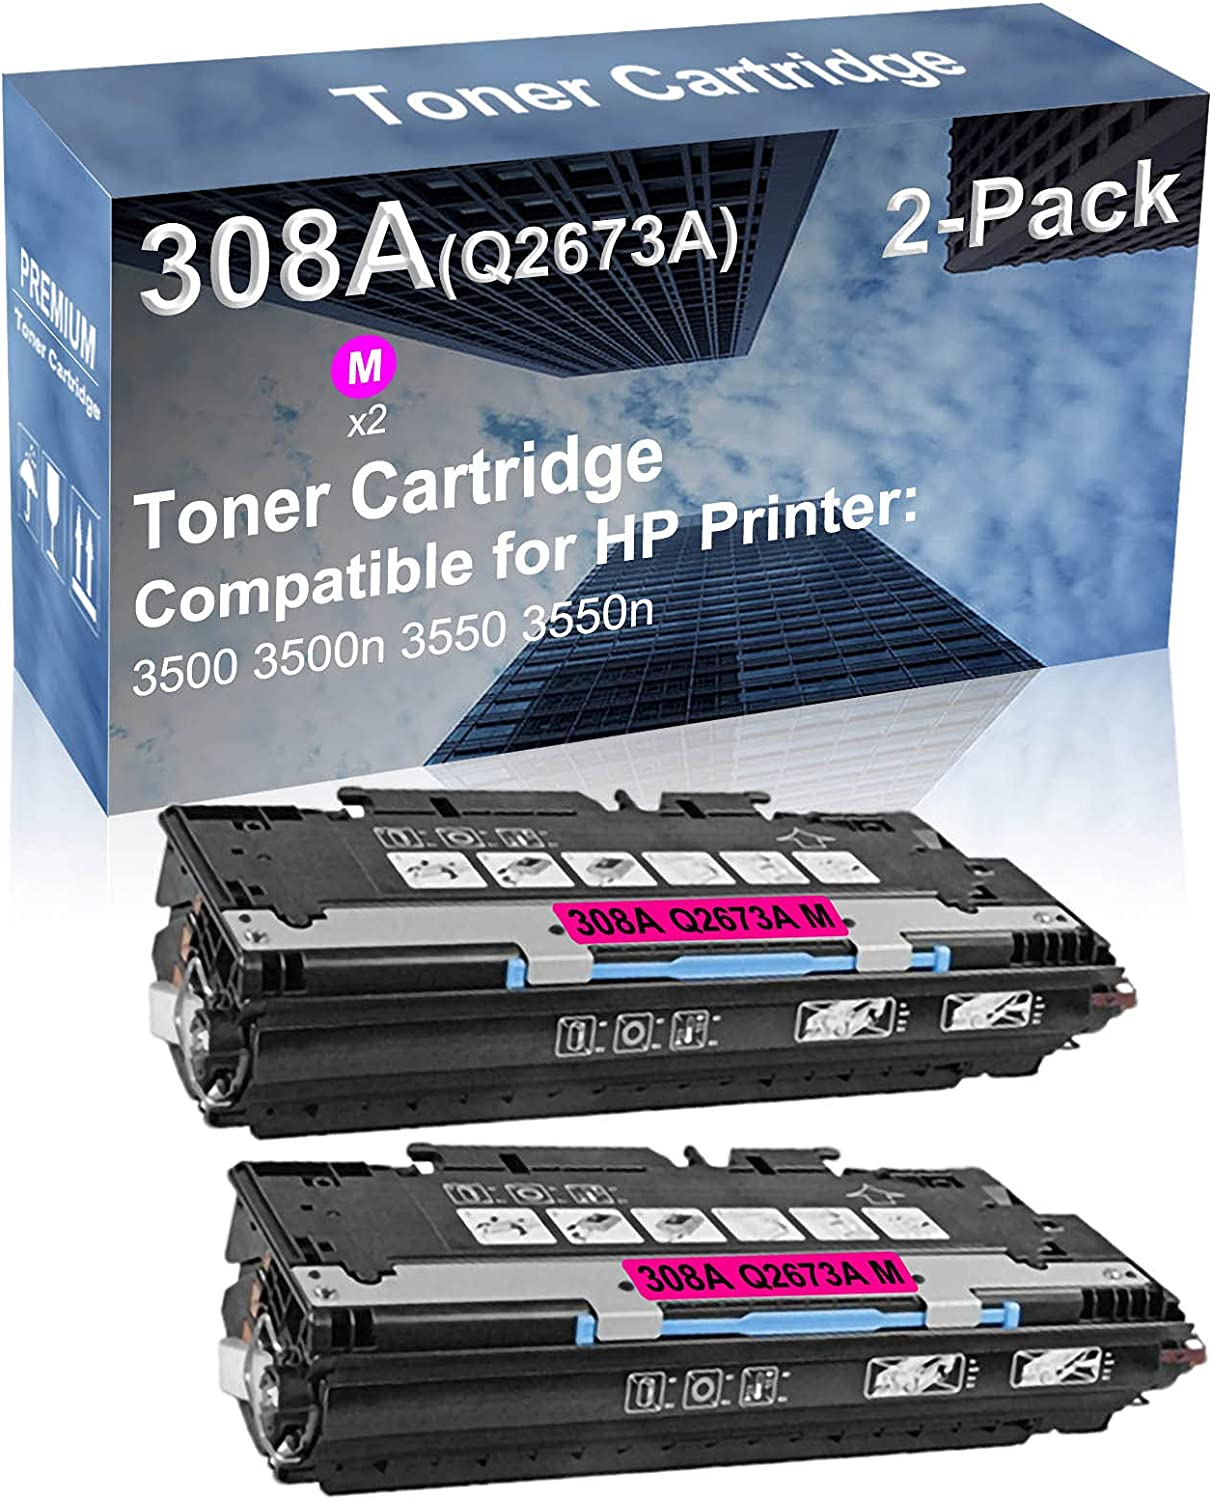 2-Pack (Magenta) Compatible High Yield 308A 309A (Q2673A) Laser Printer Toner Cartridge use for HP 3500 3500n 3550 3550n Printer